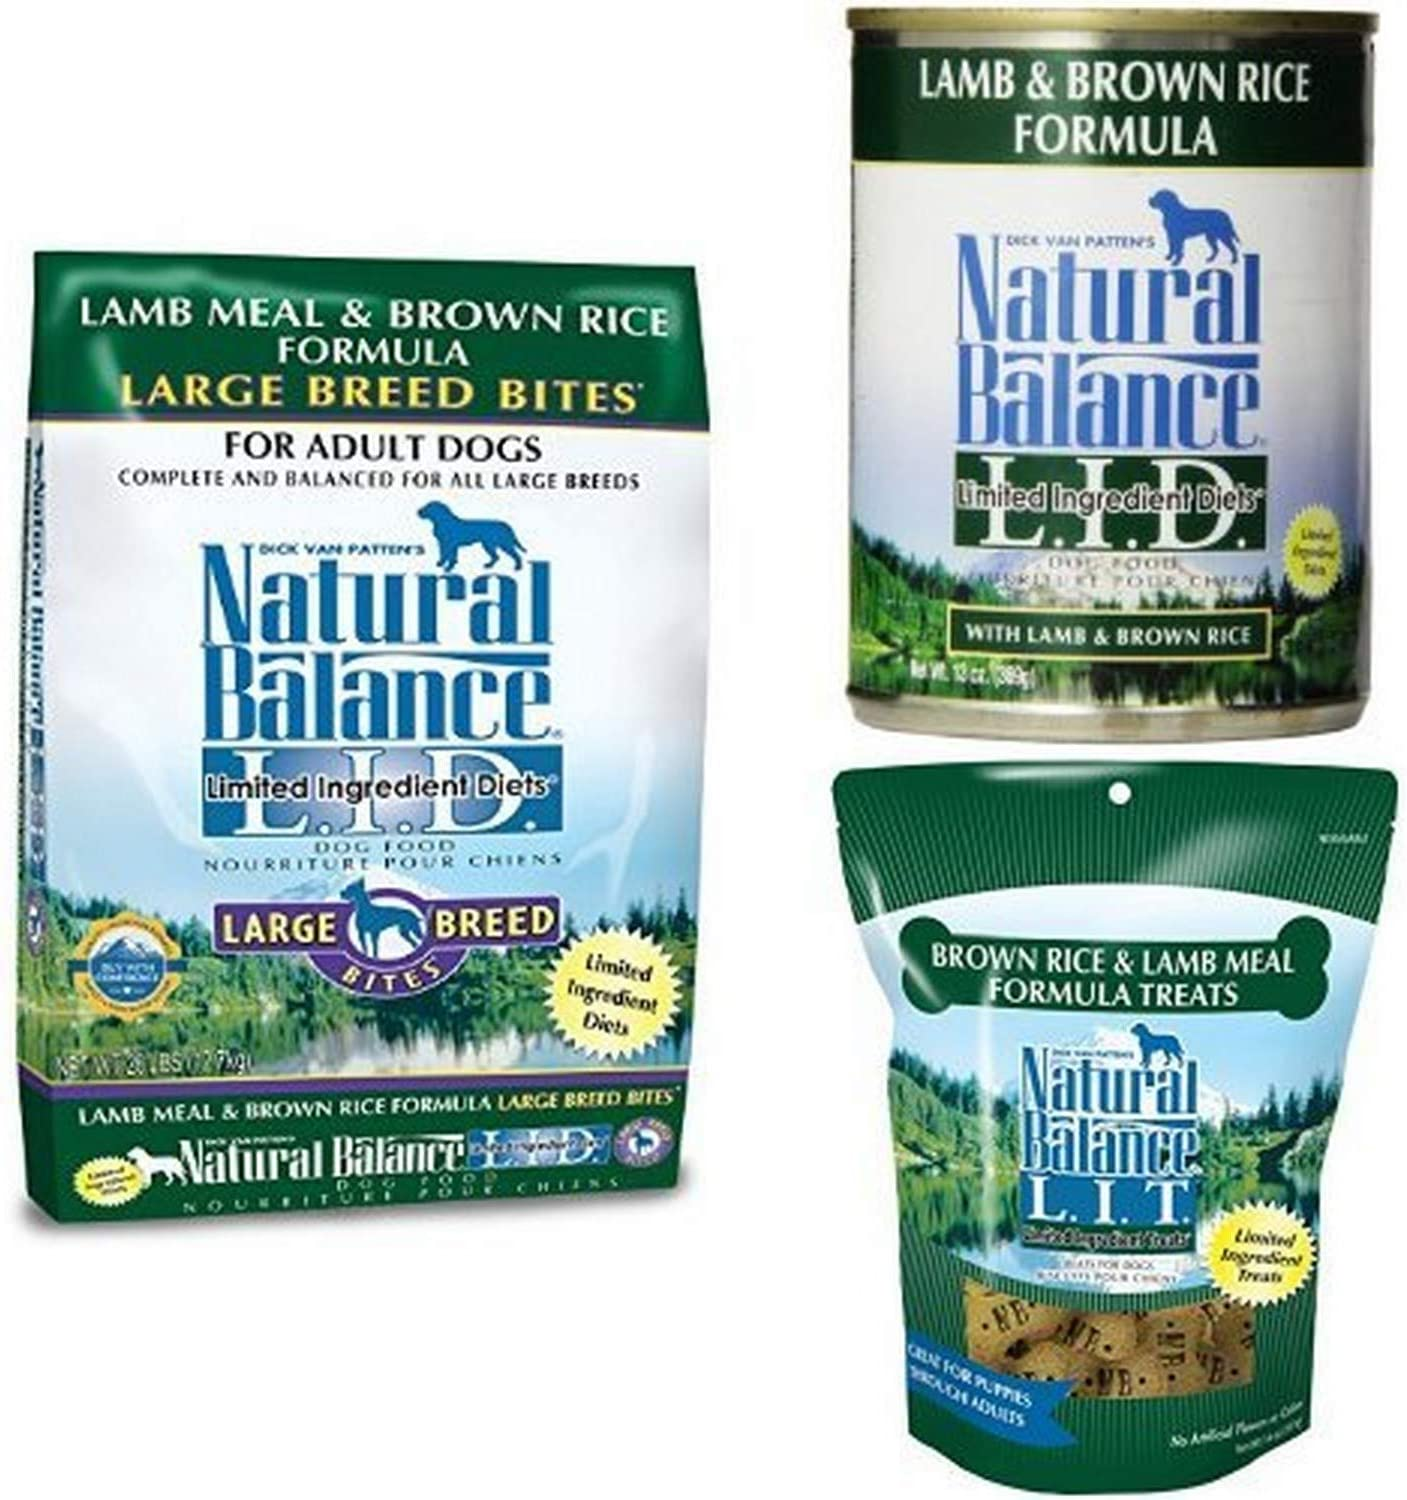 Natural Balance Limited Ingredient Dog Food And Treats, Lamb Meal & Brown Rice Formula, Bundle: 28-Pound Bag Dry Dog Food, Large Breeds, 13-Ounce Cans (Pack Of 12) Wet Dog Food, 14-Ounce Bag Dog Treats